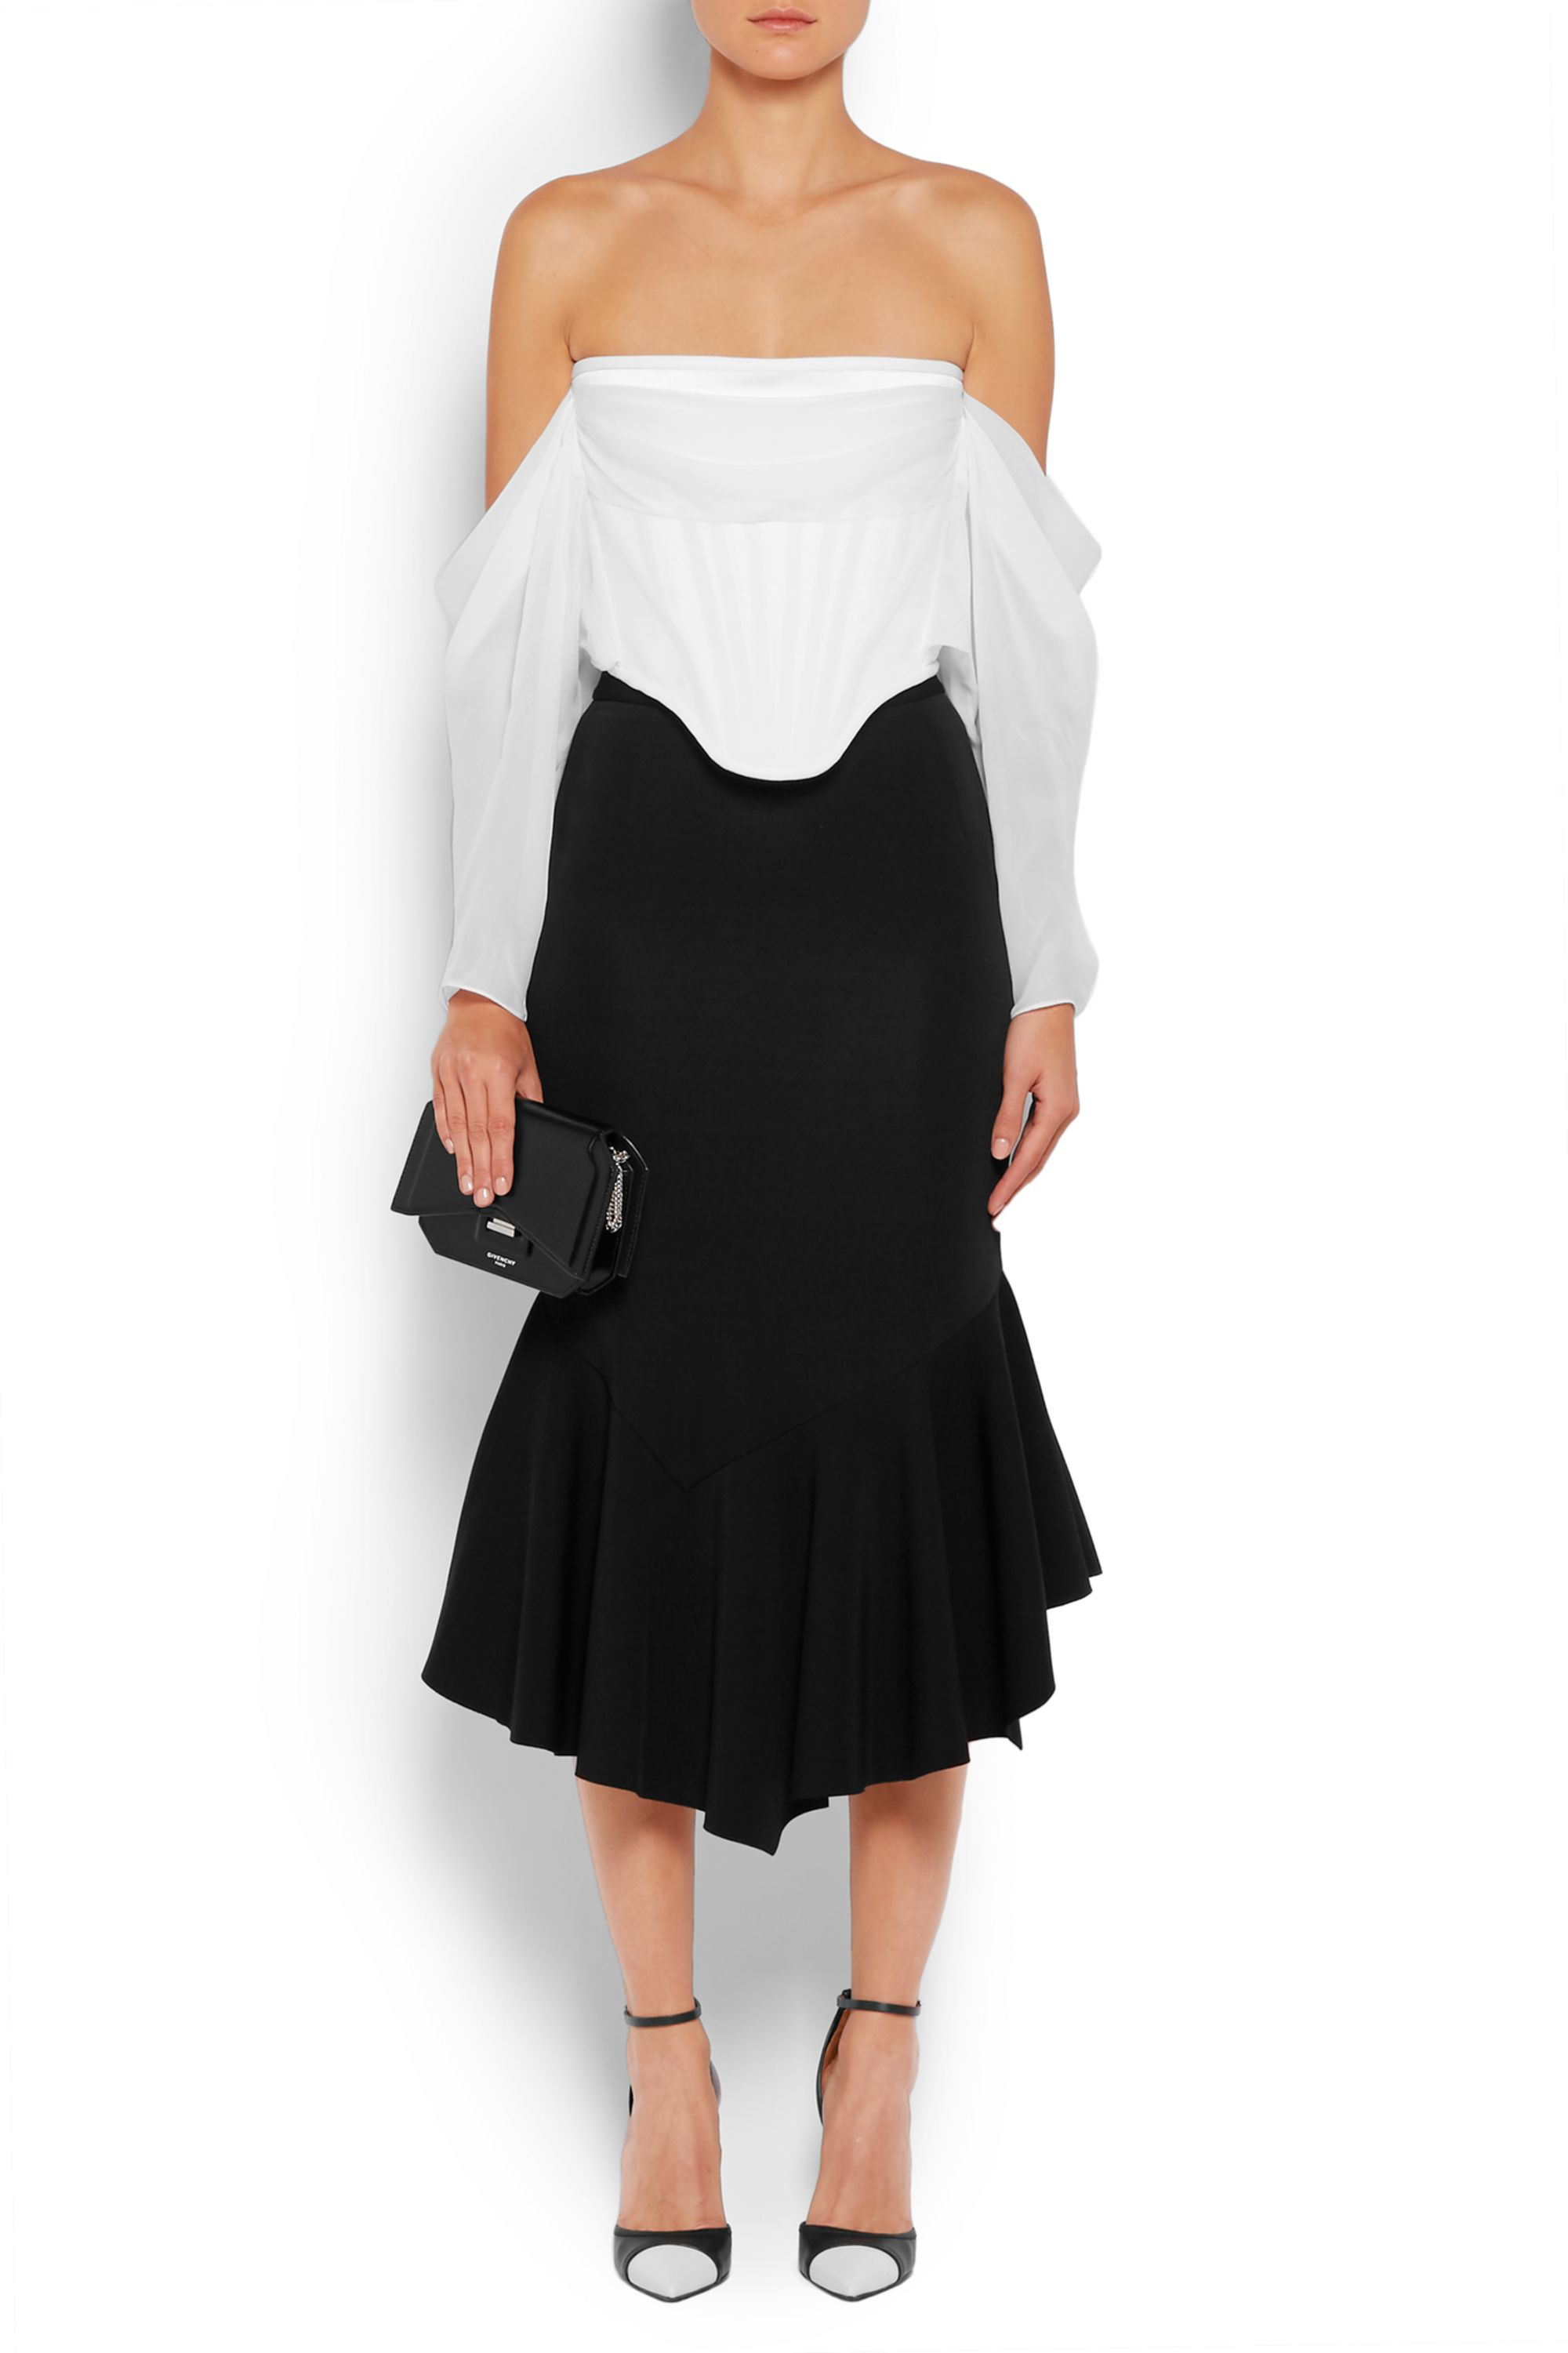 Givenchy Off-the-shoulder top in white satin and silk-chiffon